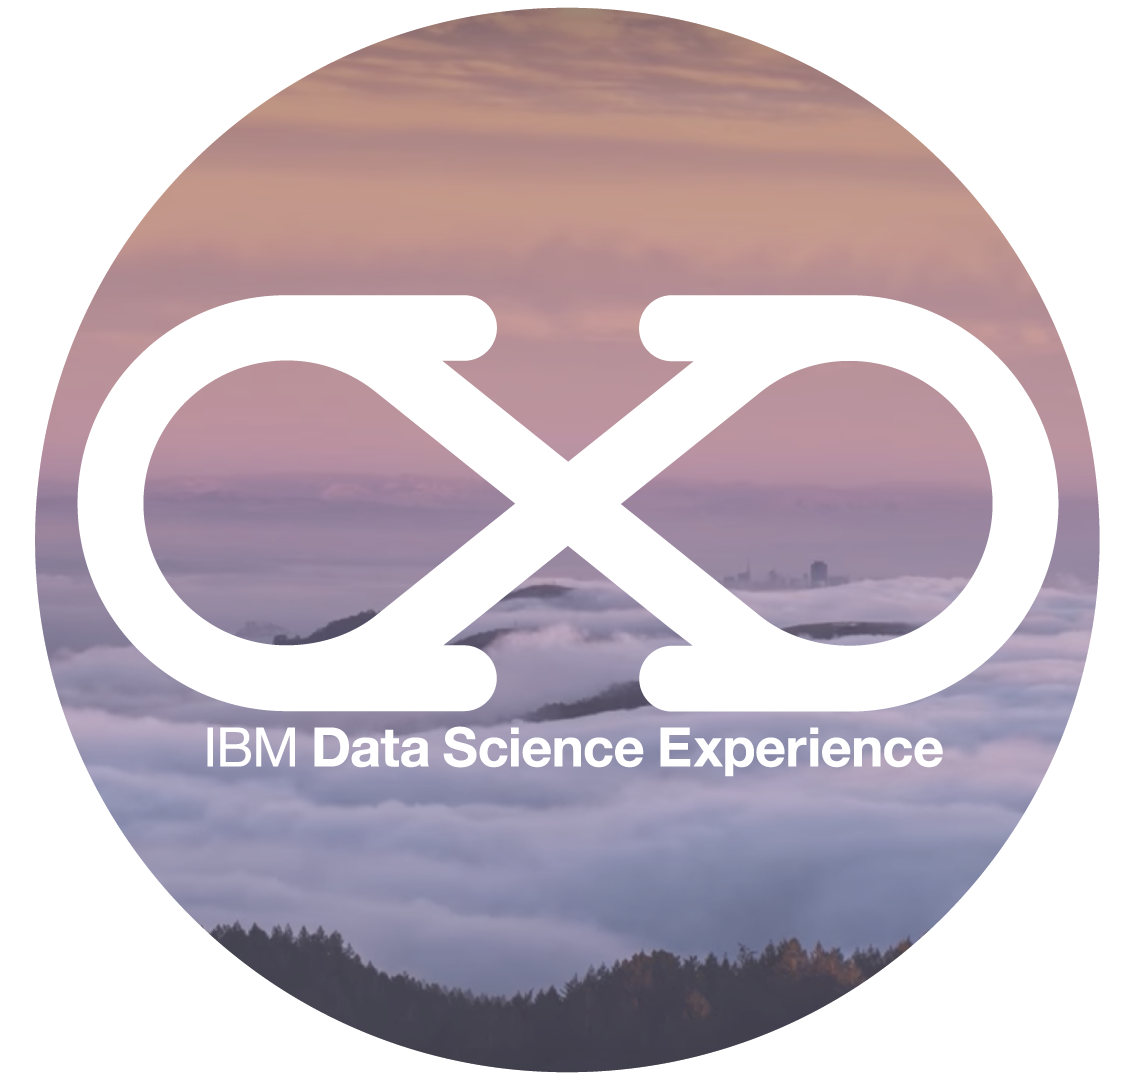 Ibm Metro Science Brand Experience Analytics Systems PNG Image